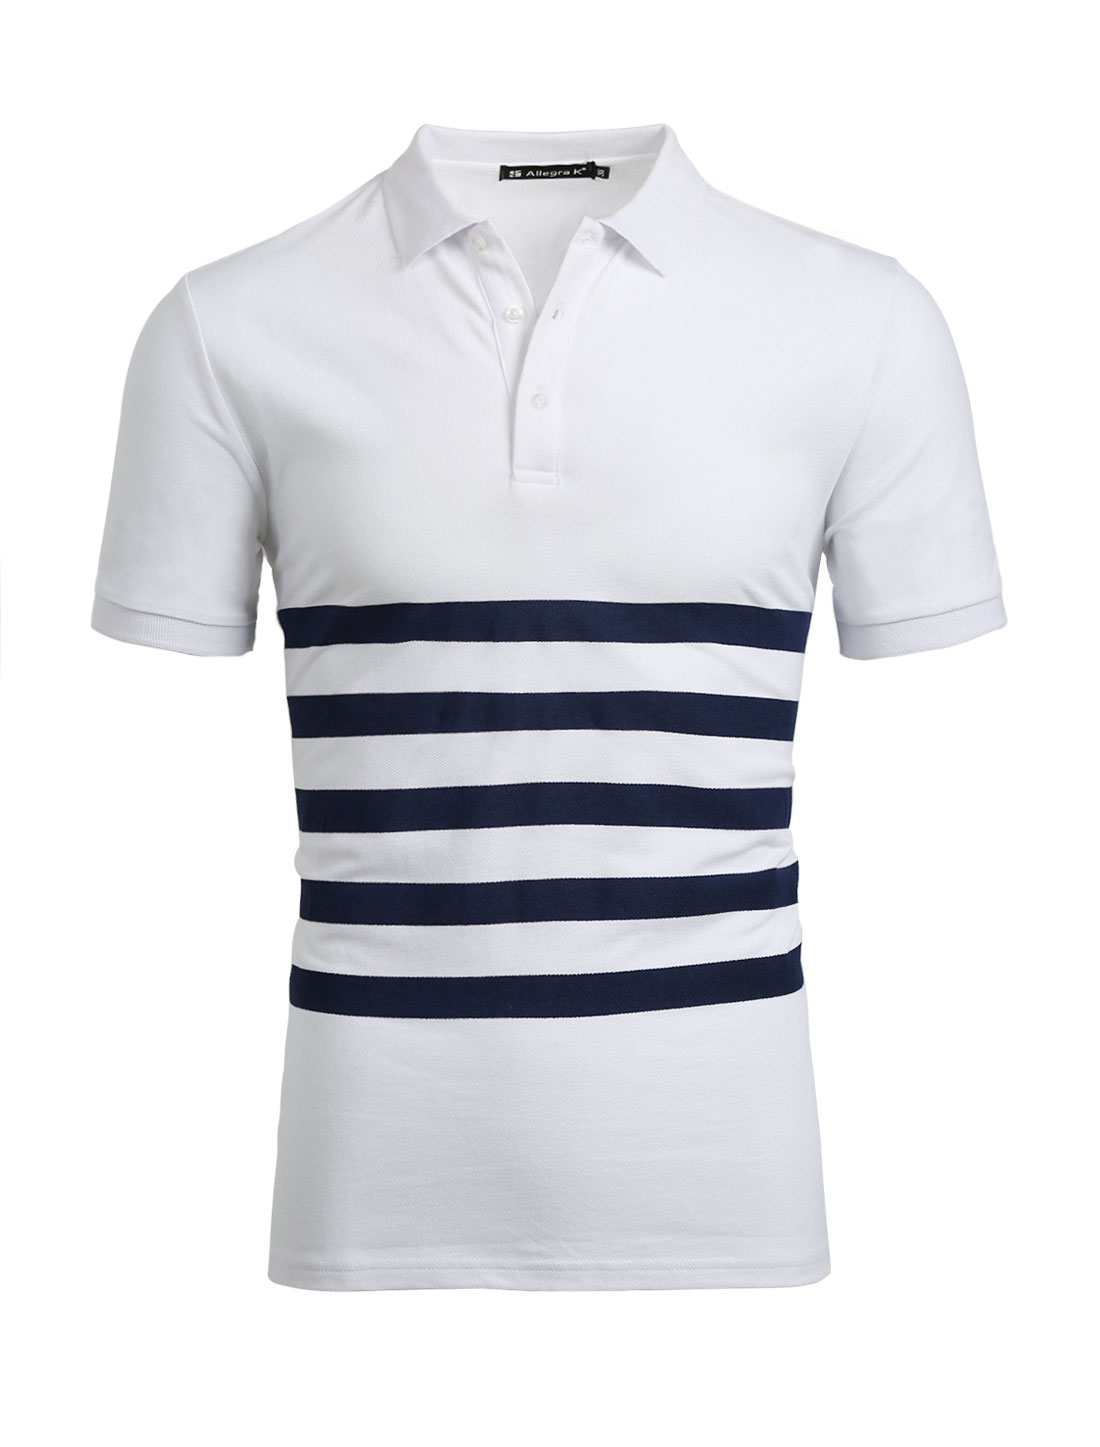 Men Half Placket Buttoned Short Sleeves Stripes Tee Shirt White L